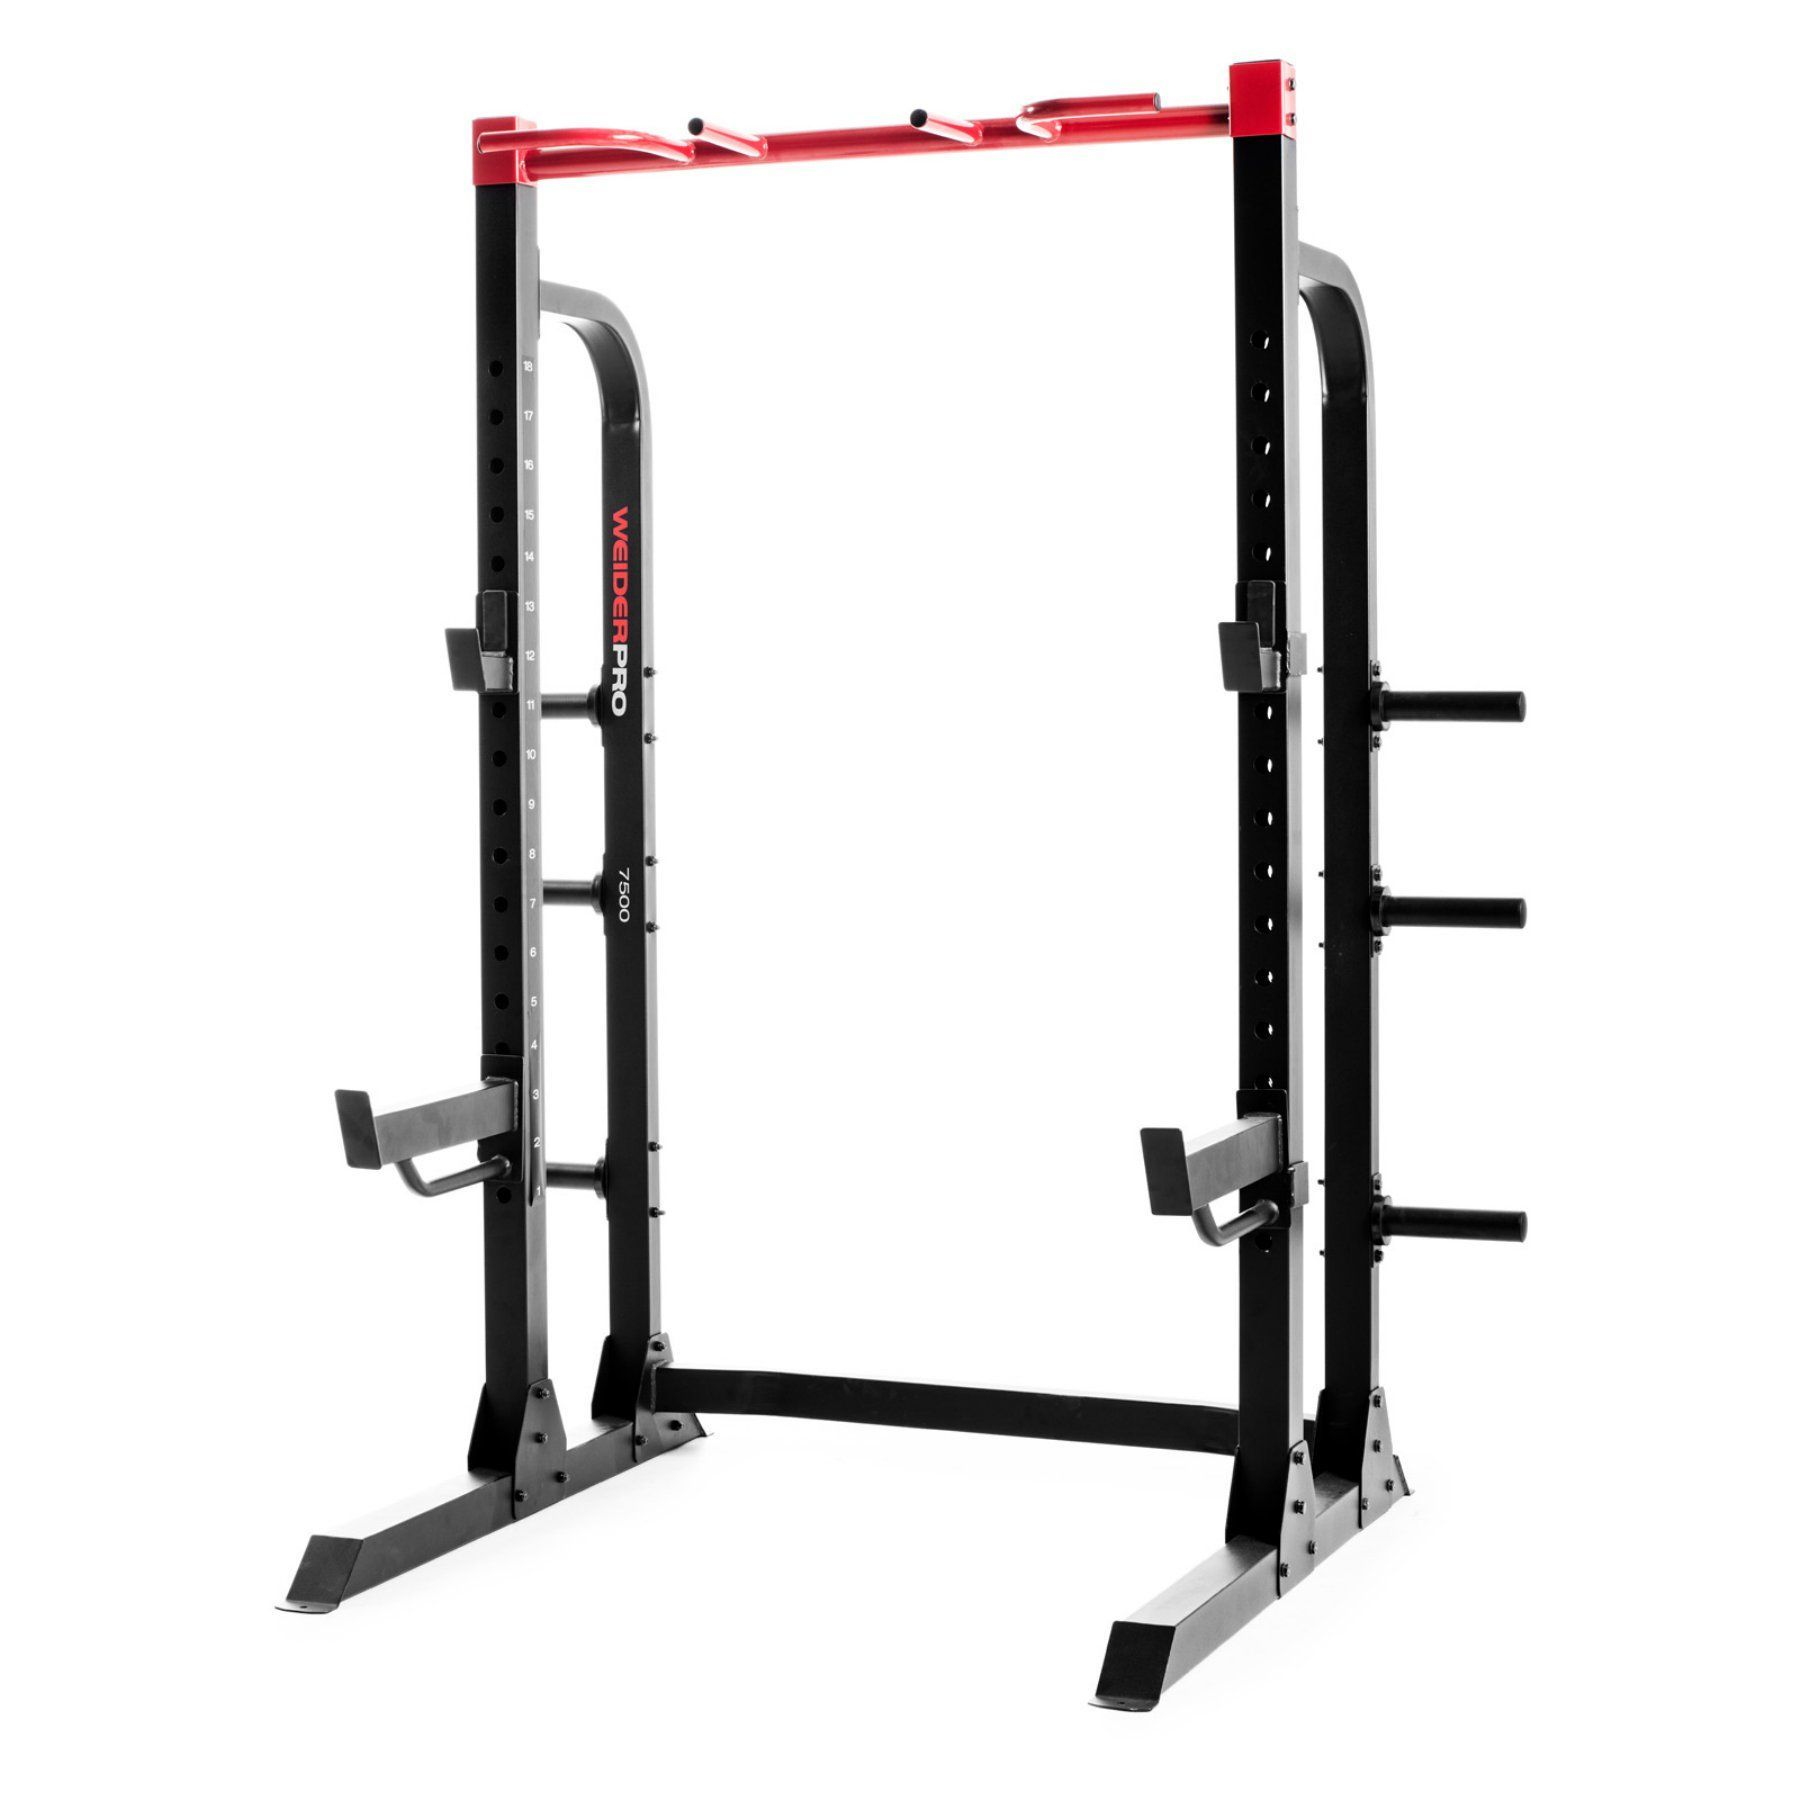 Weider pro power pack products at home gym half